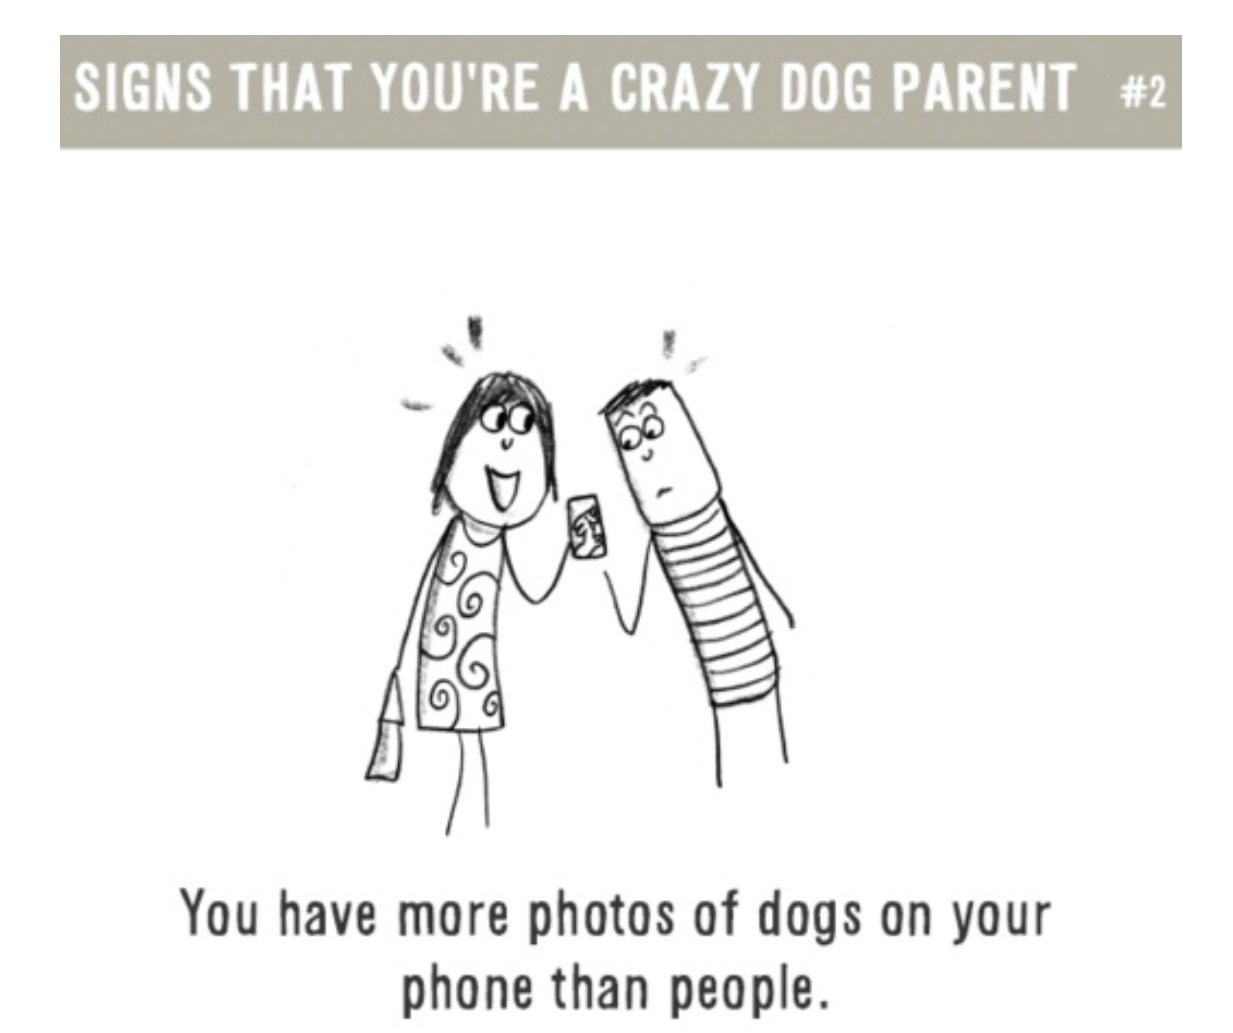 Yes! Lol Dogs, Dog love, Cute dogs